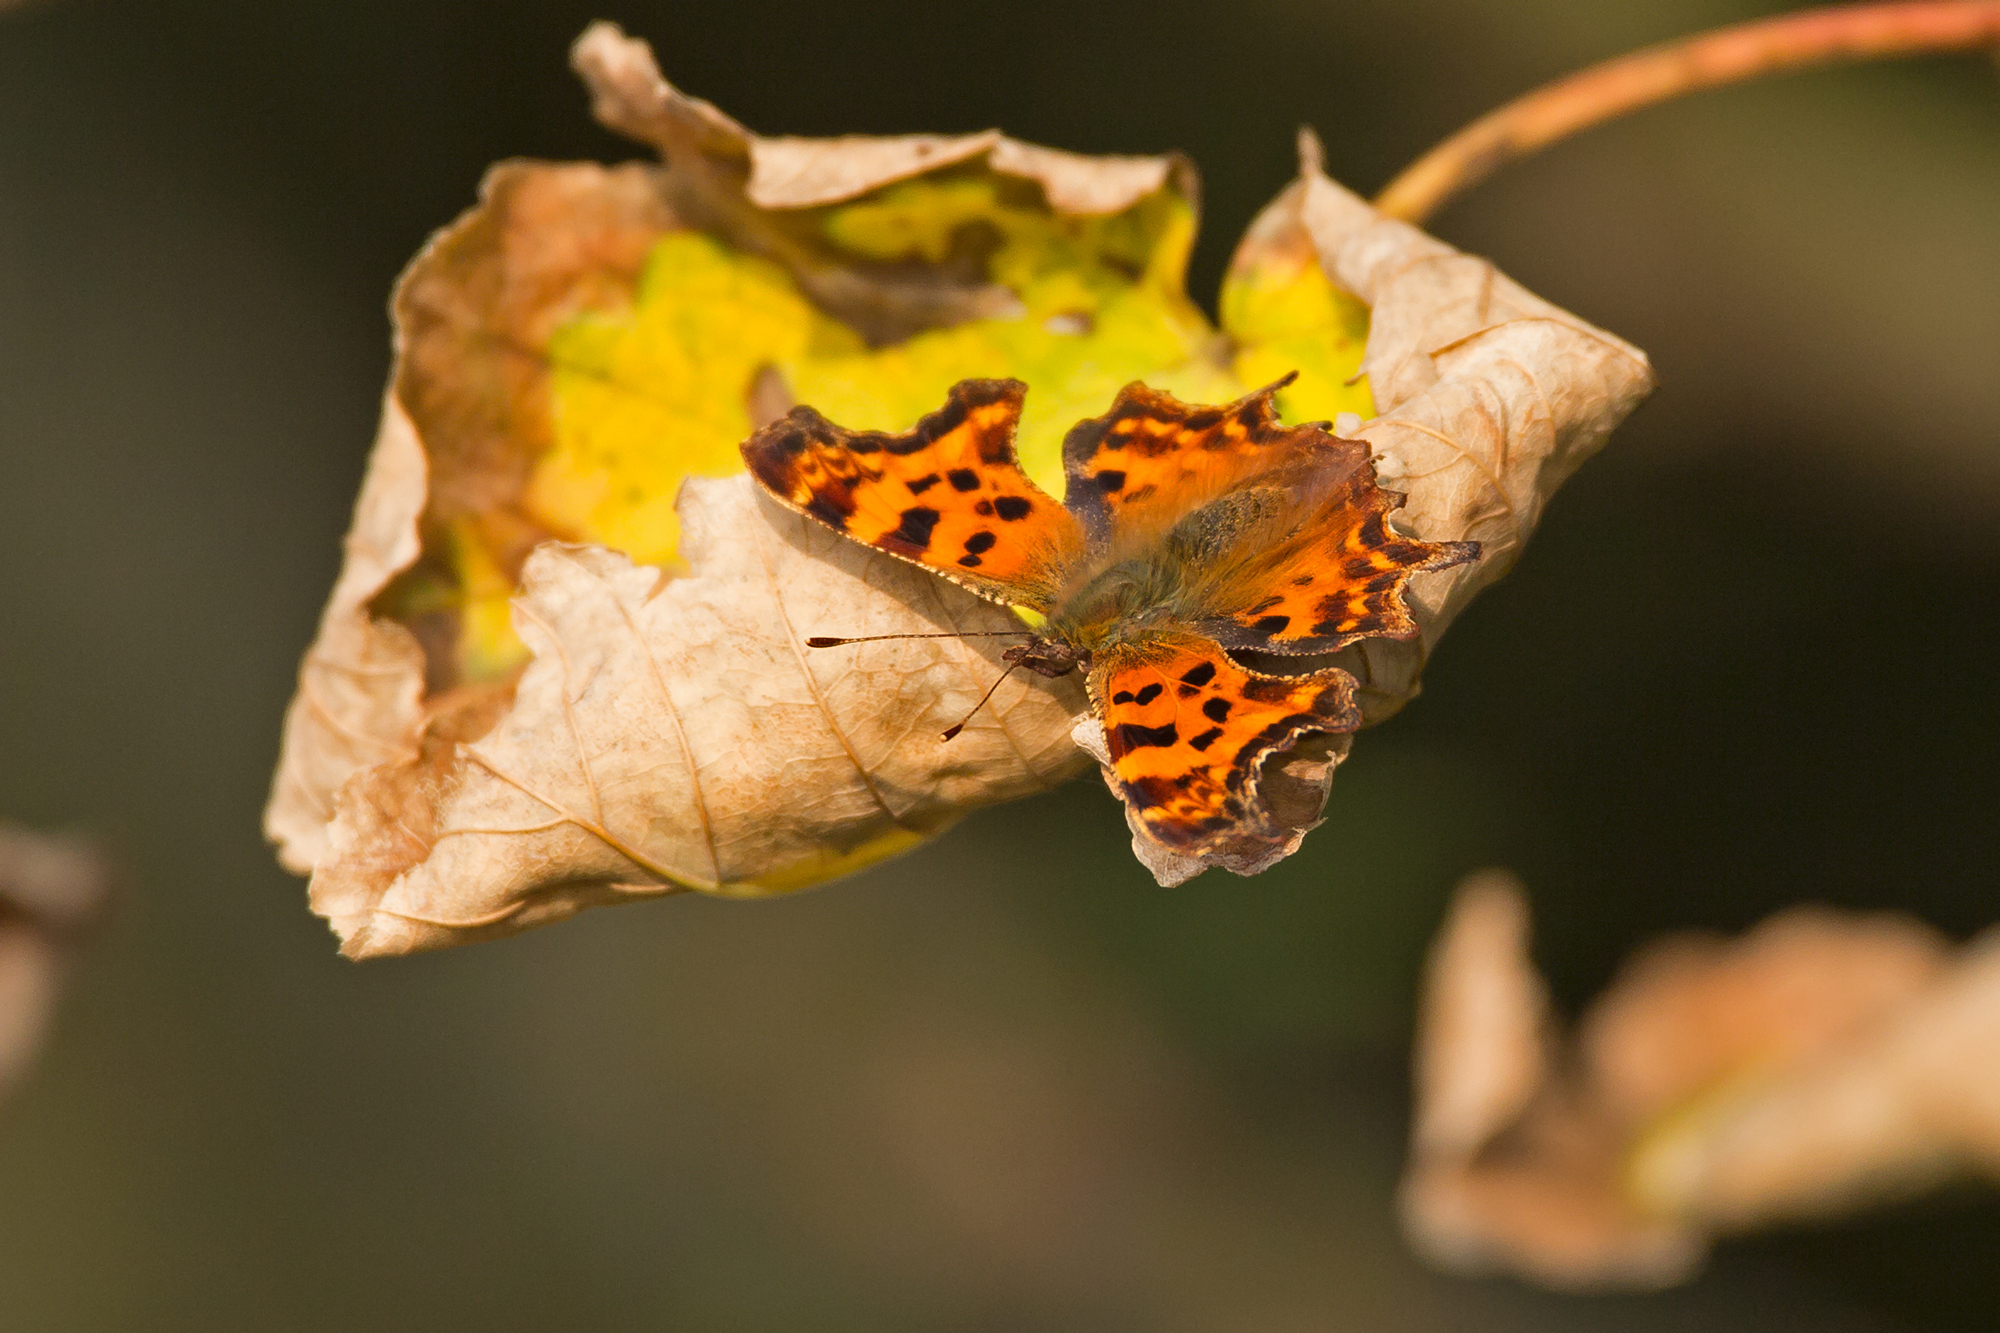 Comma on autumn Sycamore leaf.